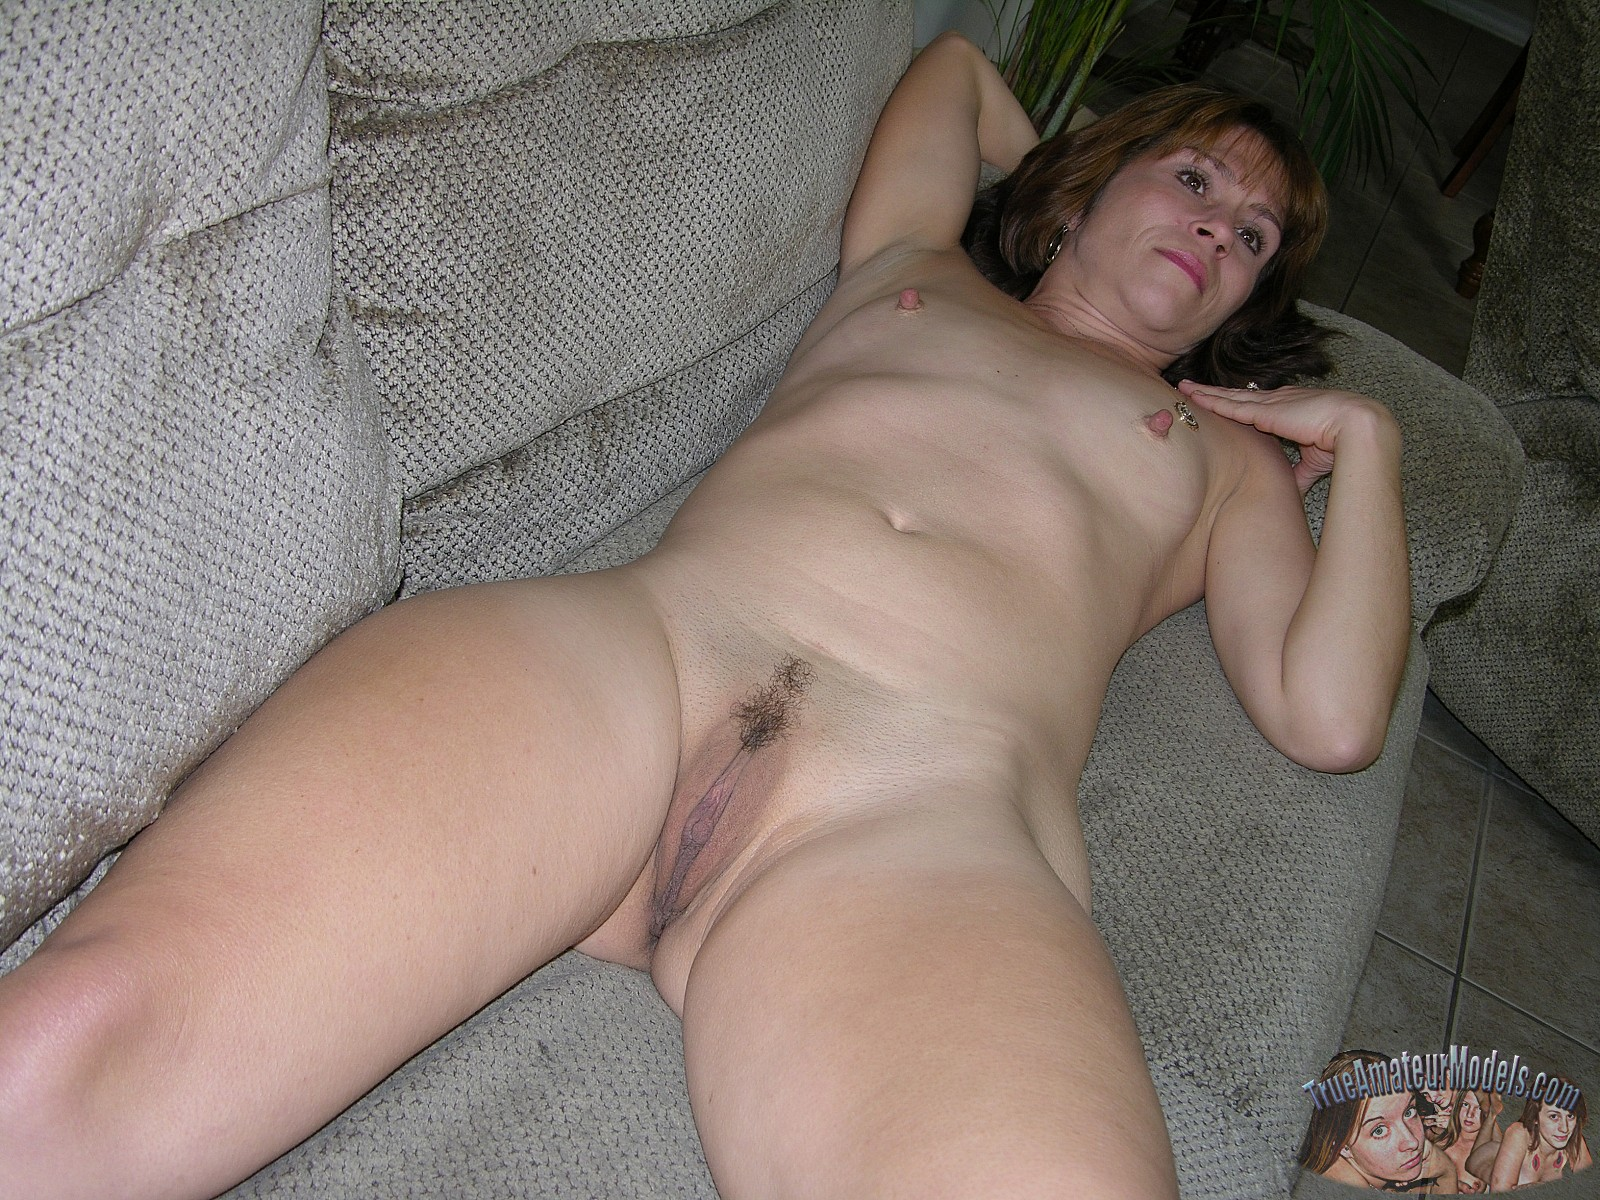 Lube tube homemade videos of milf